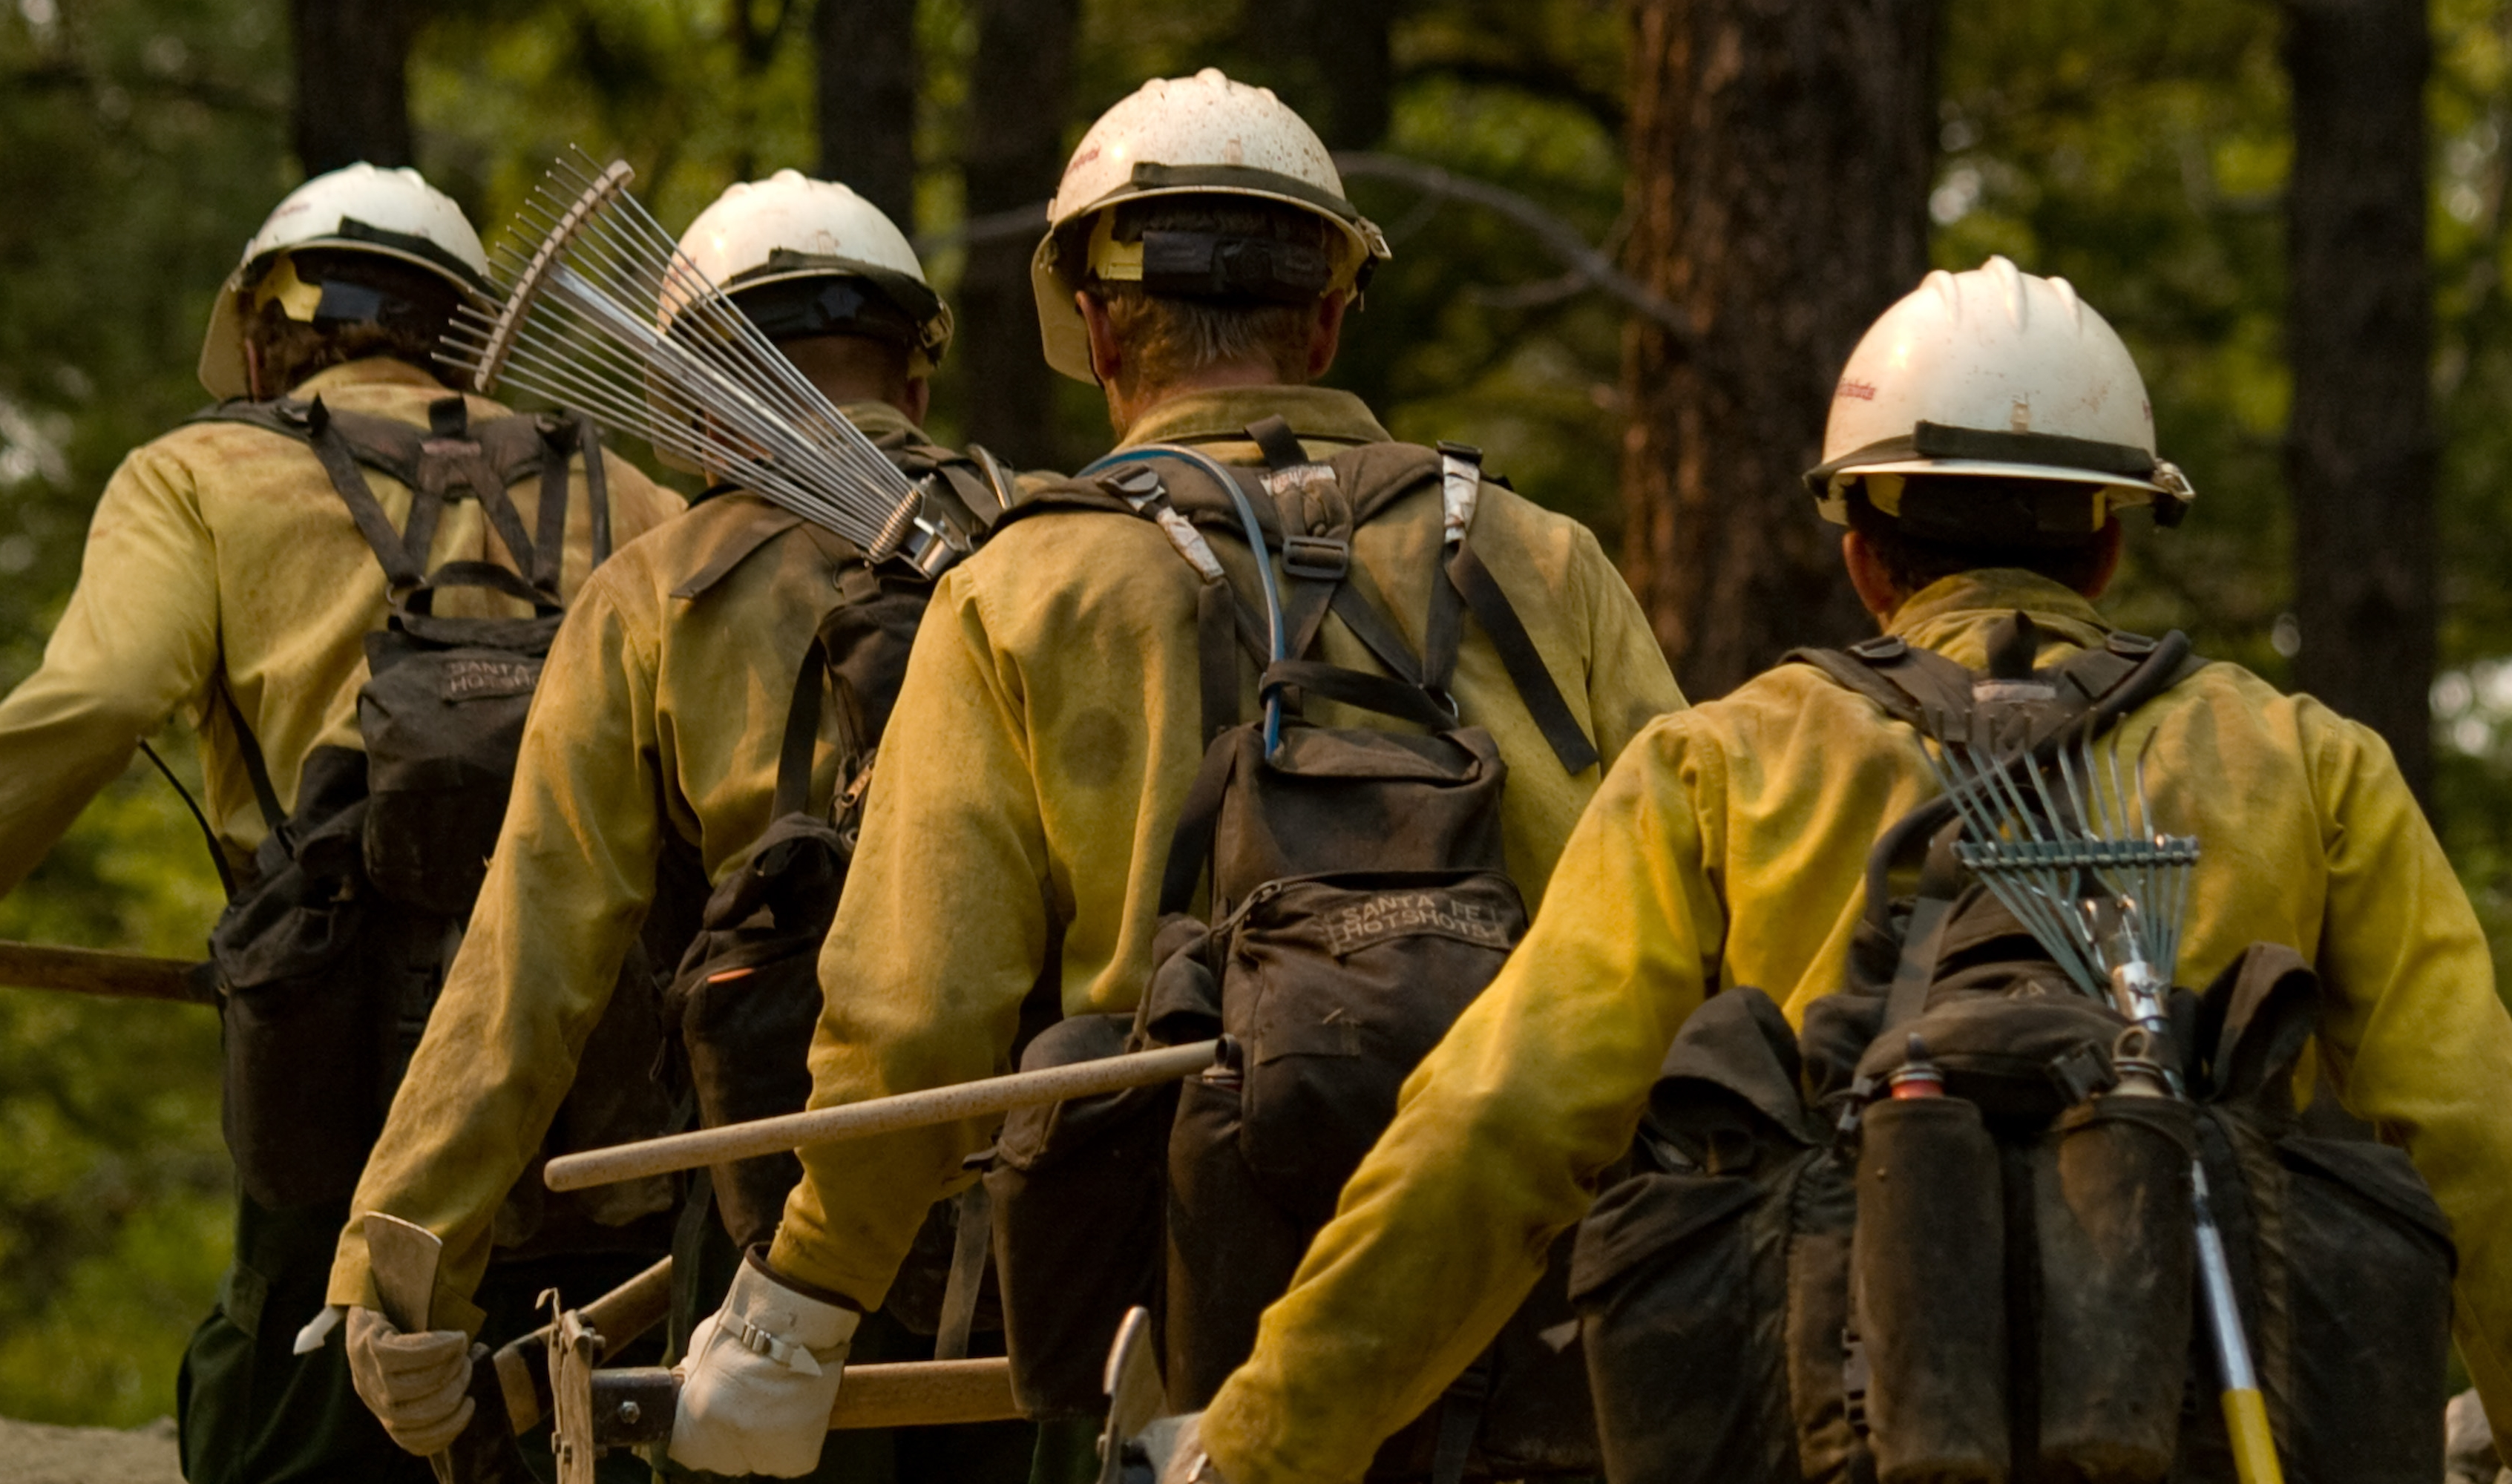 Wildland firefighters walk in single file away from the camera.